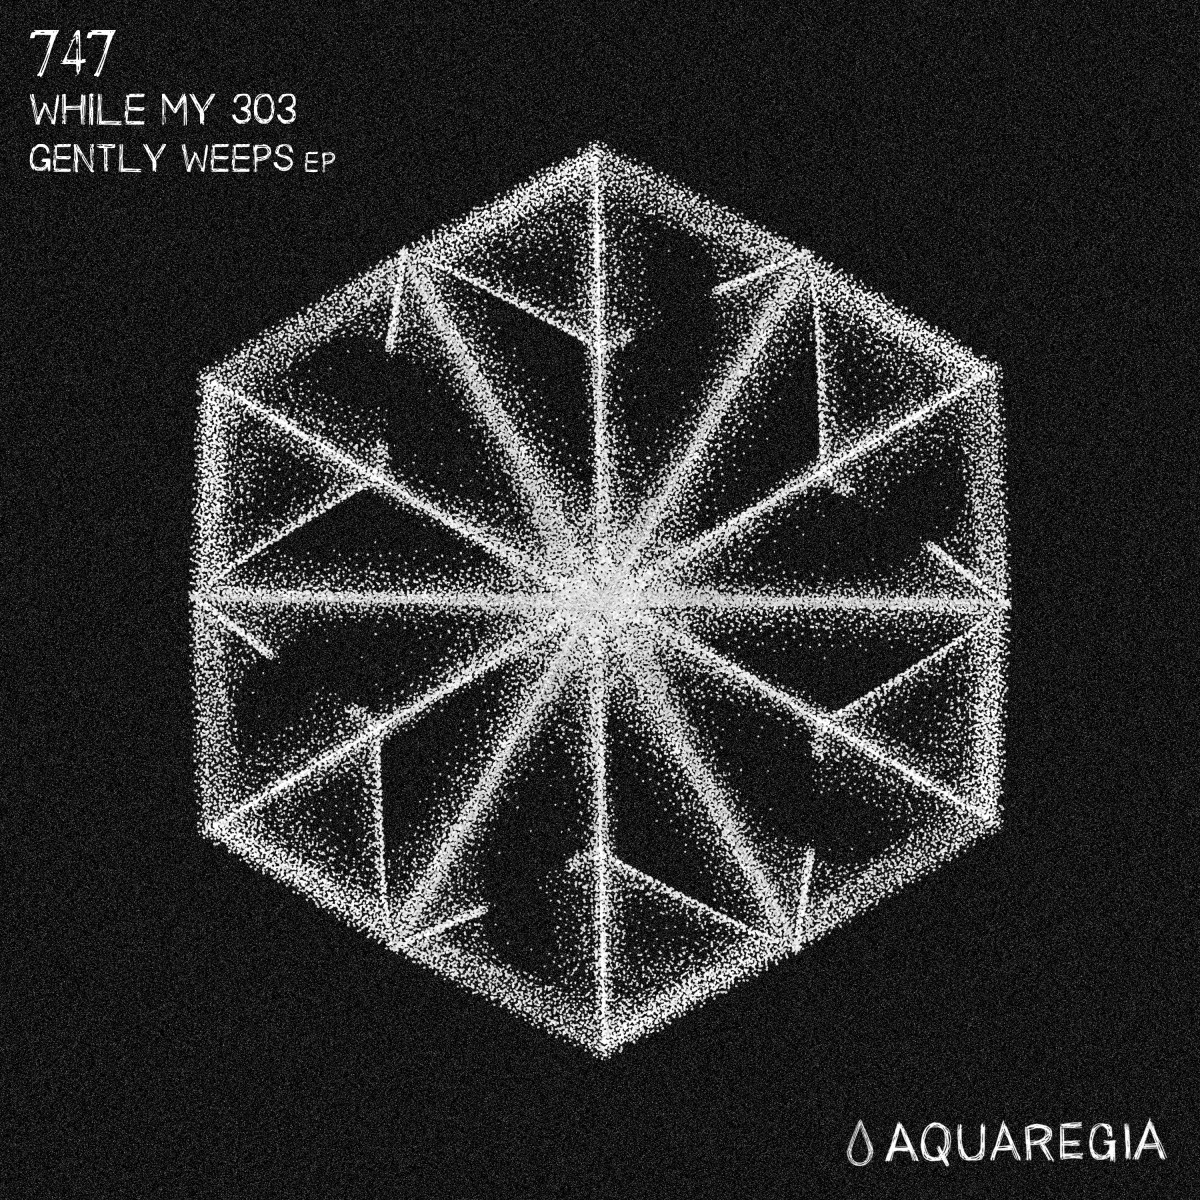 747 -While My 303 Gently Weeps EP[Aquaregia Records]